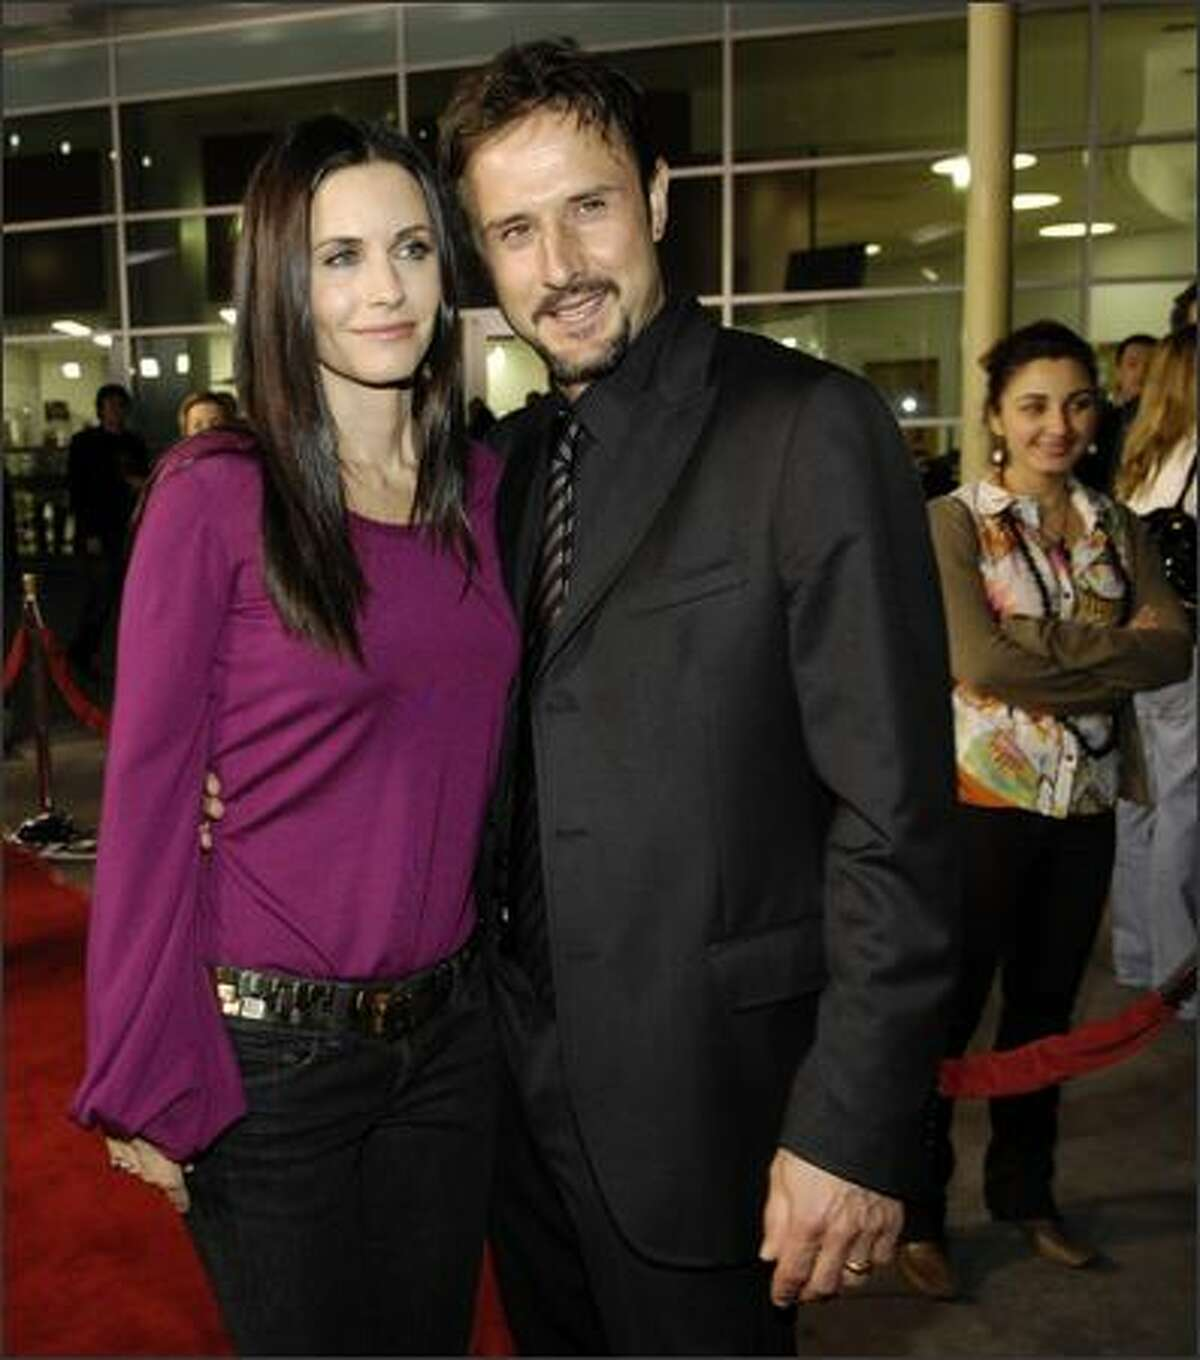 Courteney Cox, left, star of the FX show